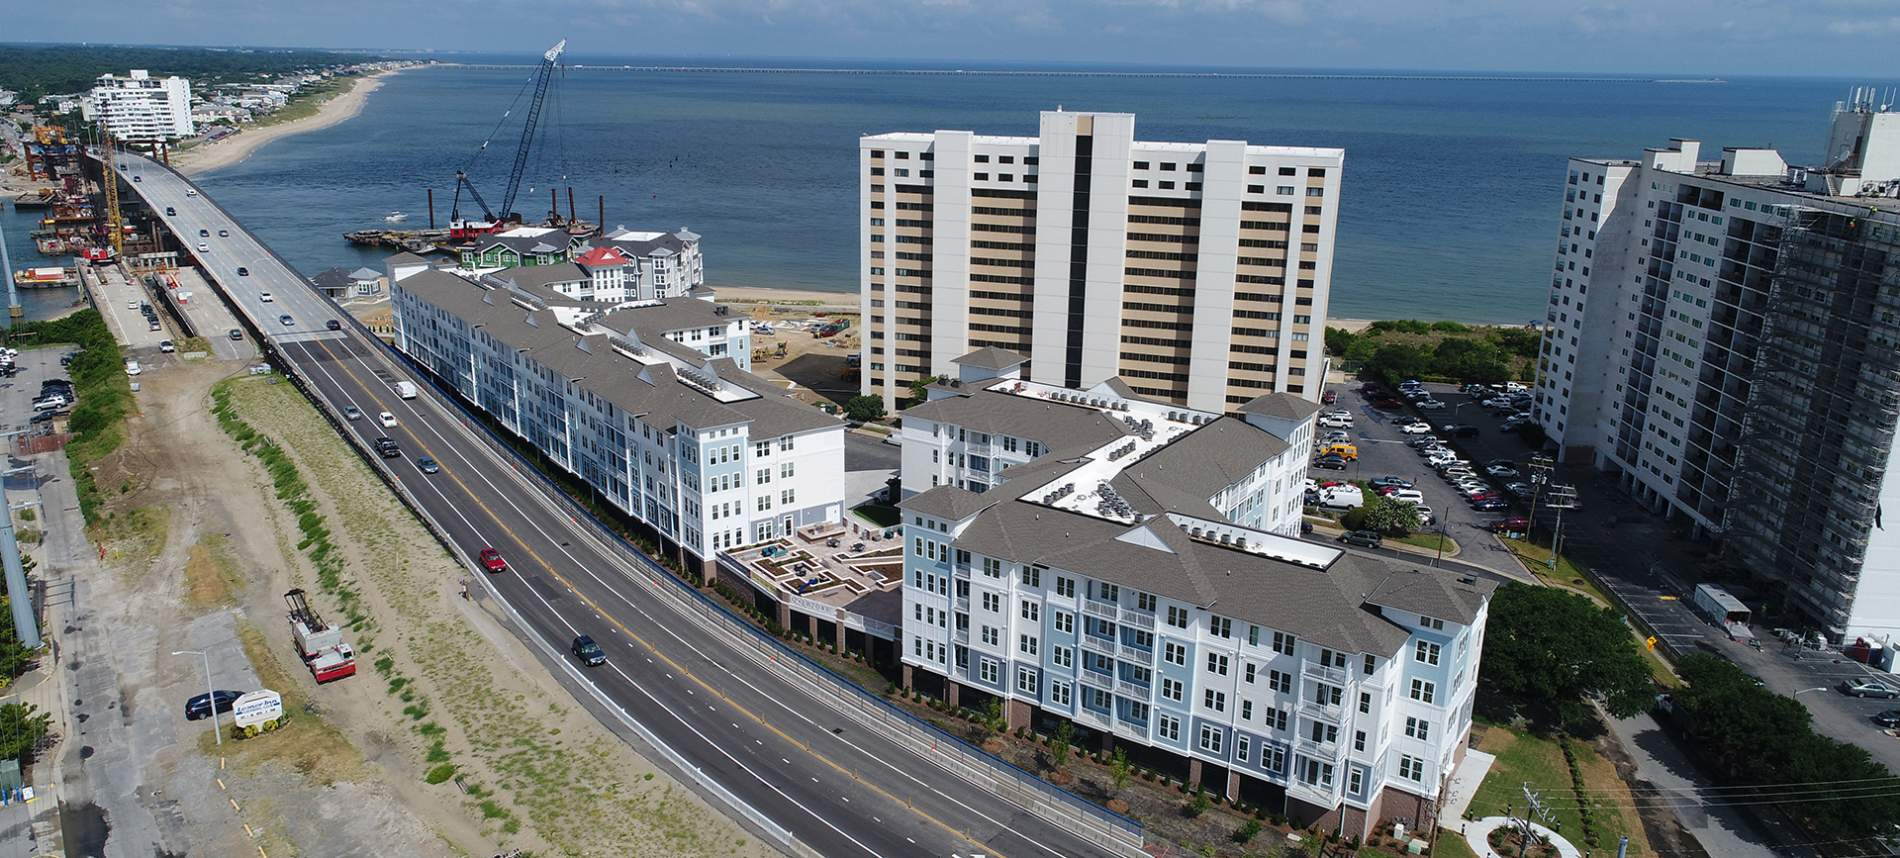 Clancy & Theys construction in Newport News